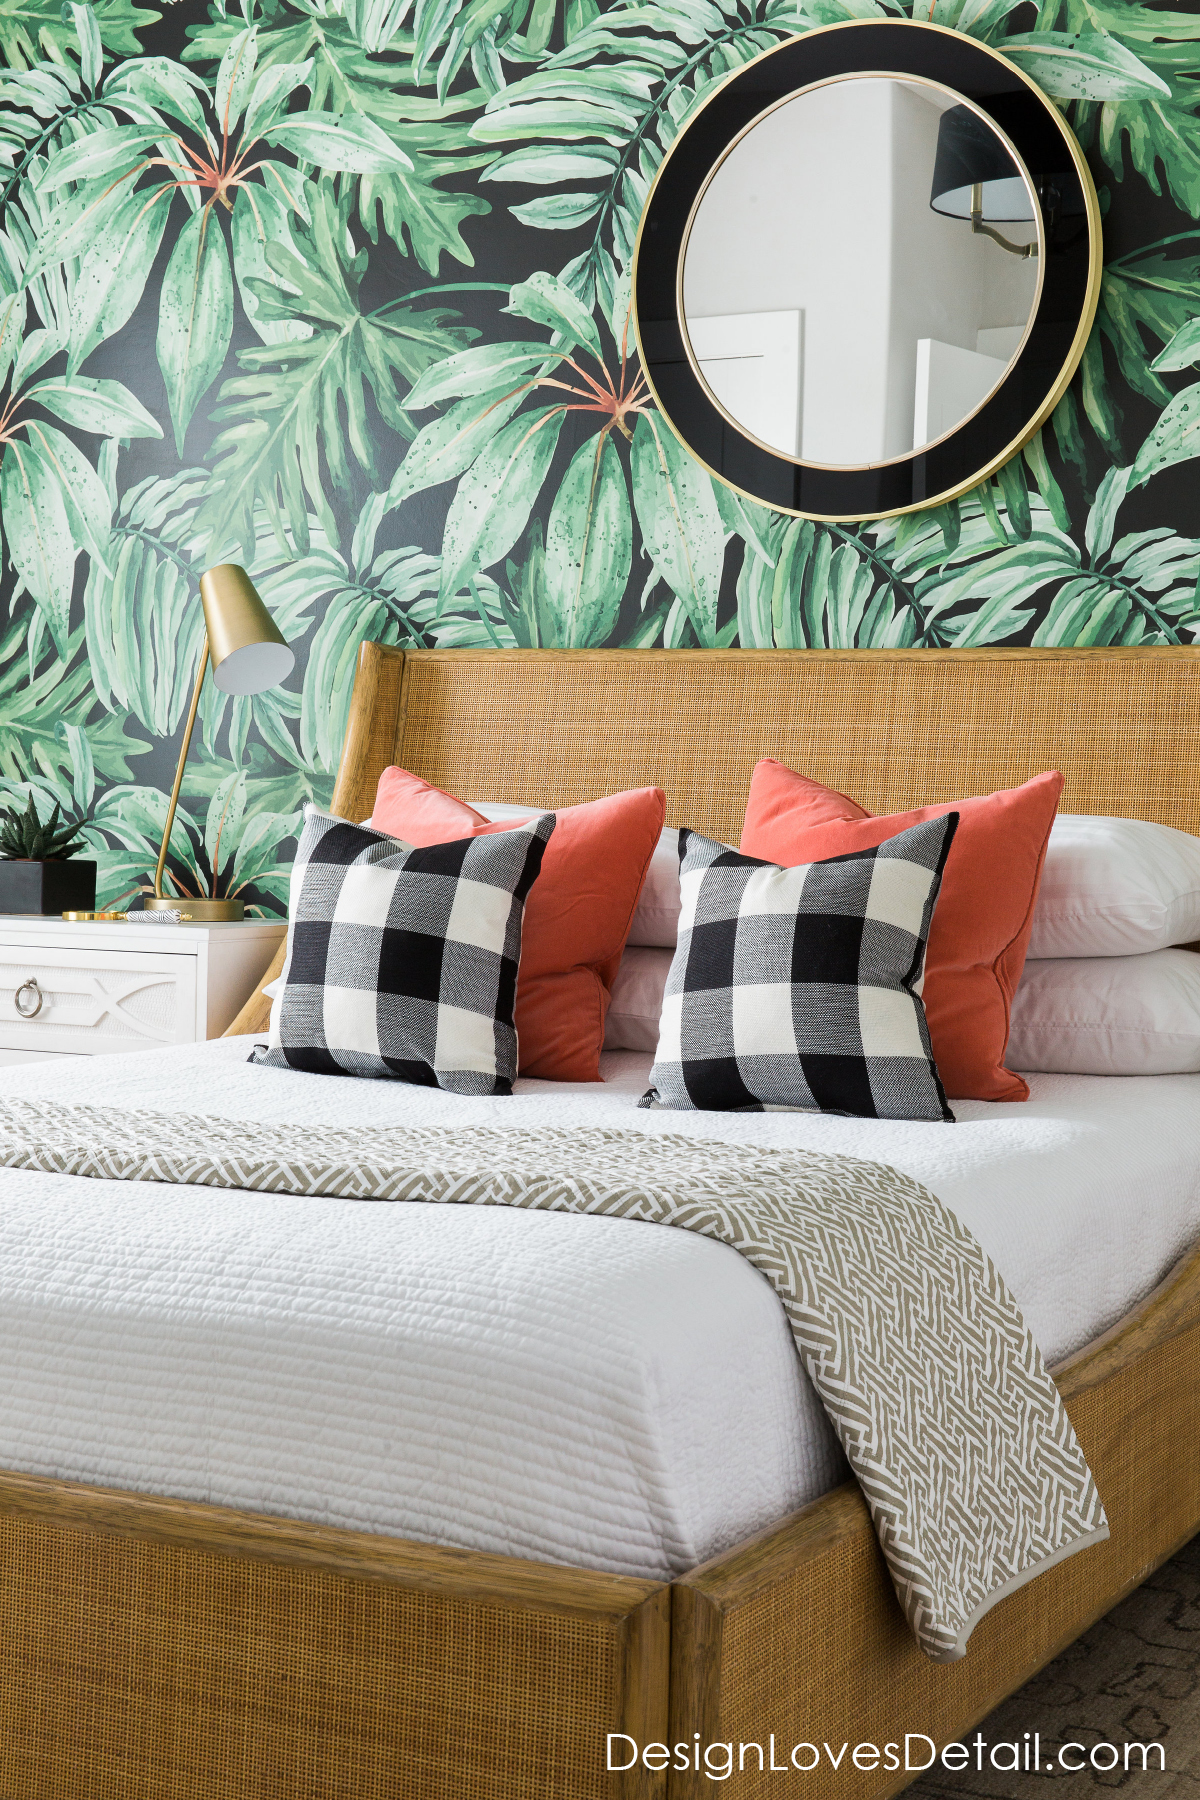 How cool is this guest room retreat with tropical vibes?! DesignLovesDetail.com has all the details on how to get this look.